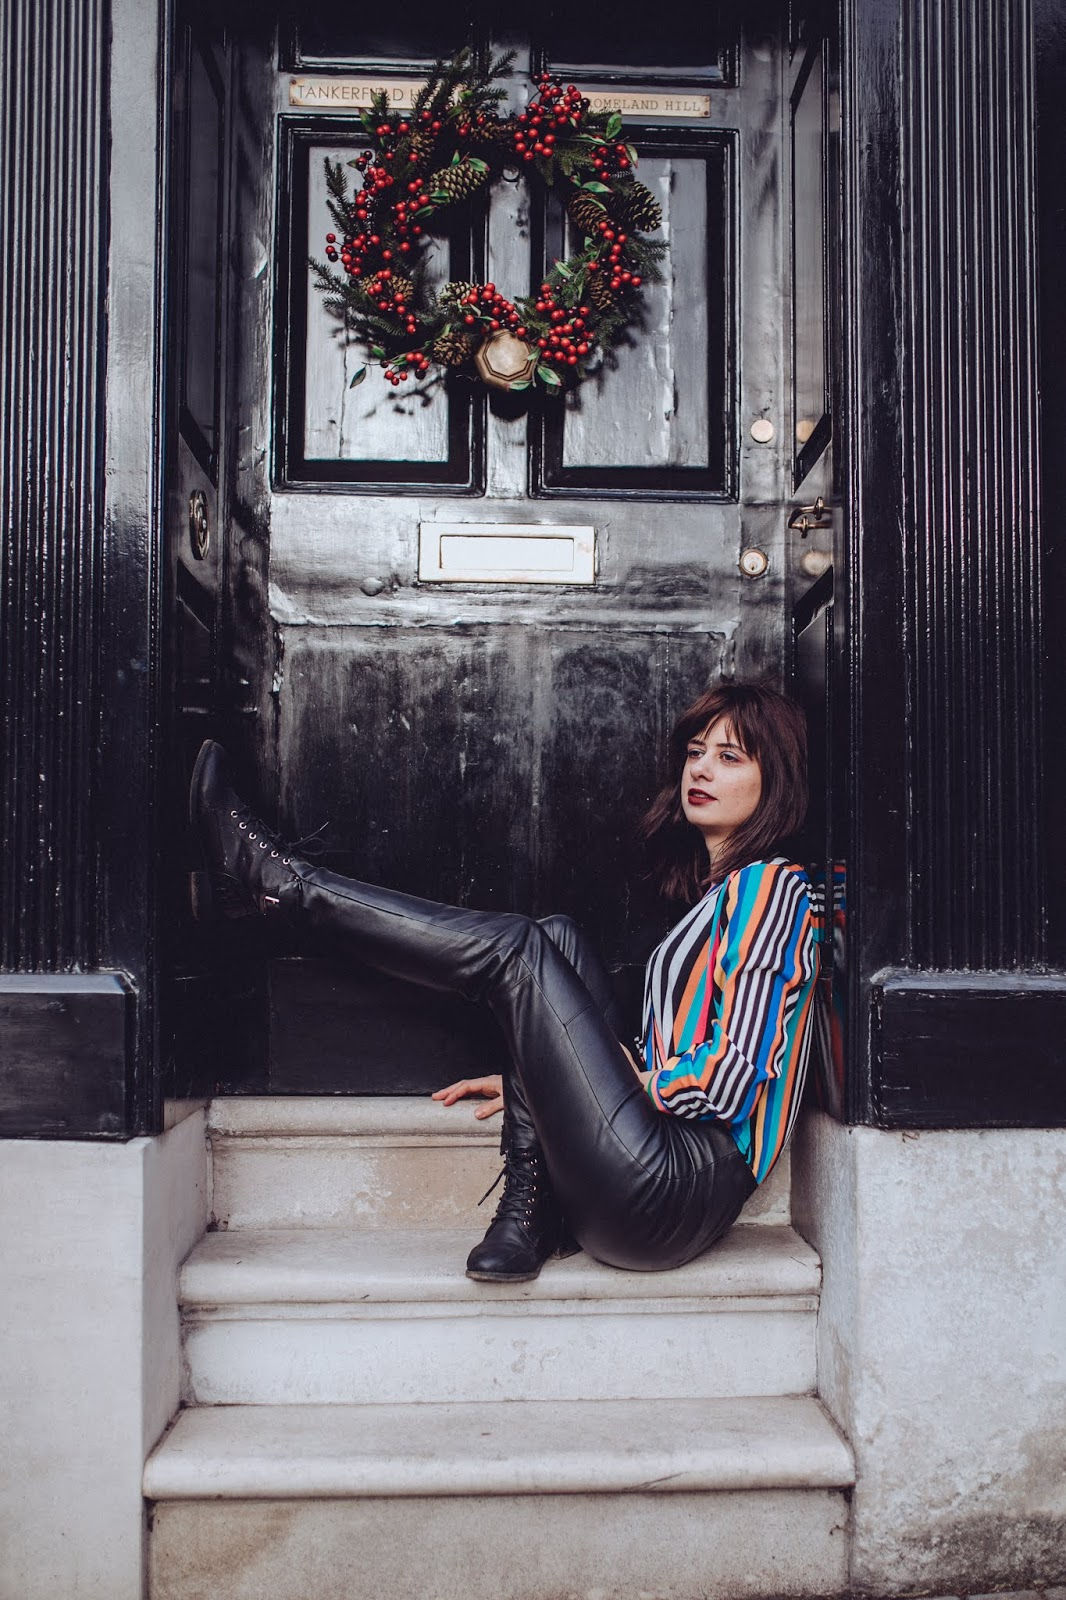 Laura is sitting on some steps. In front of a black door with a red christmas wreath